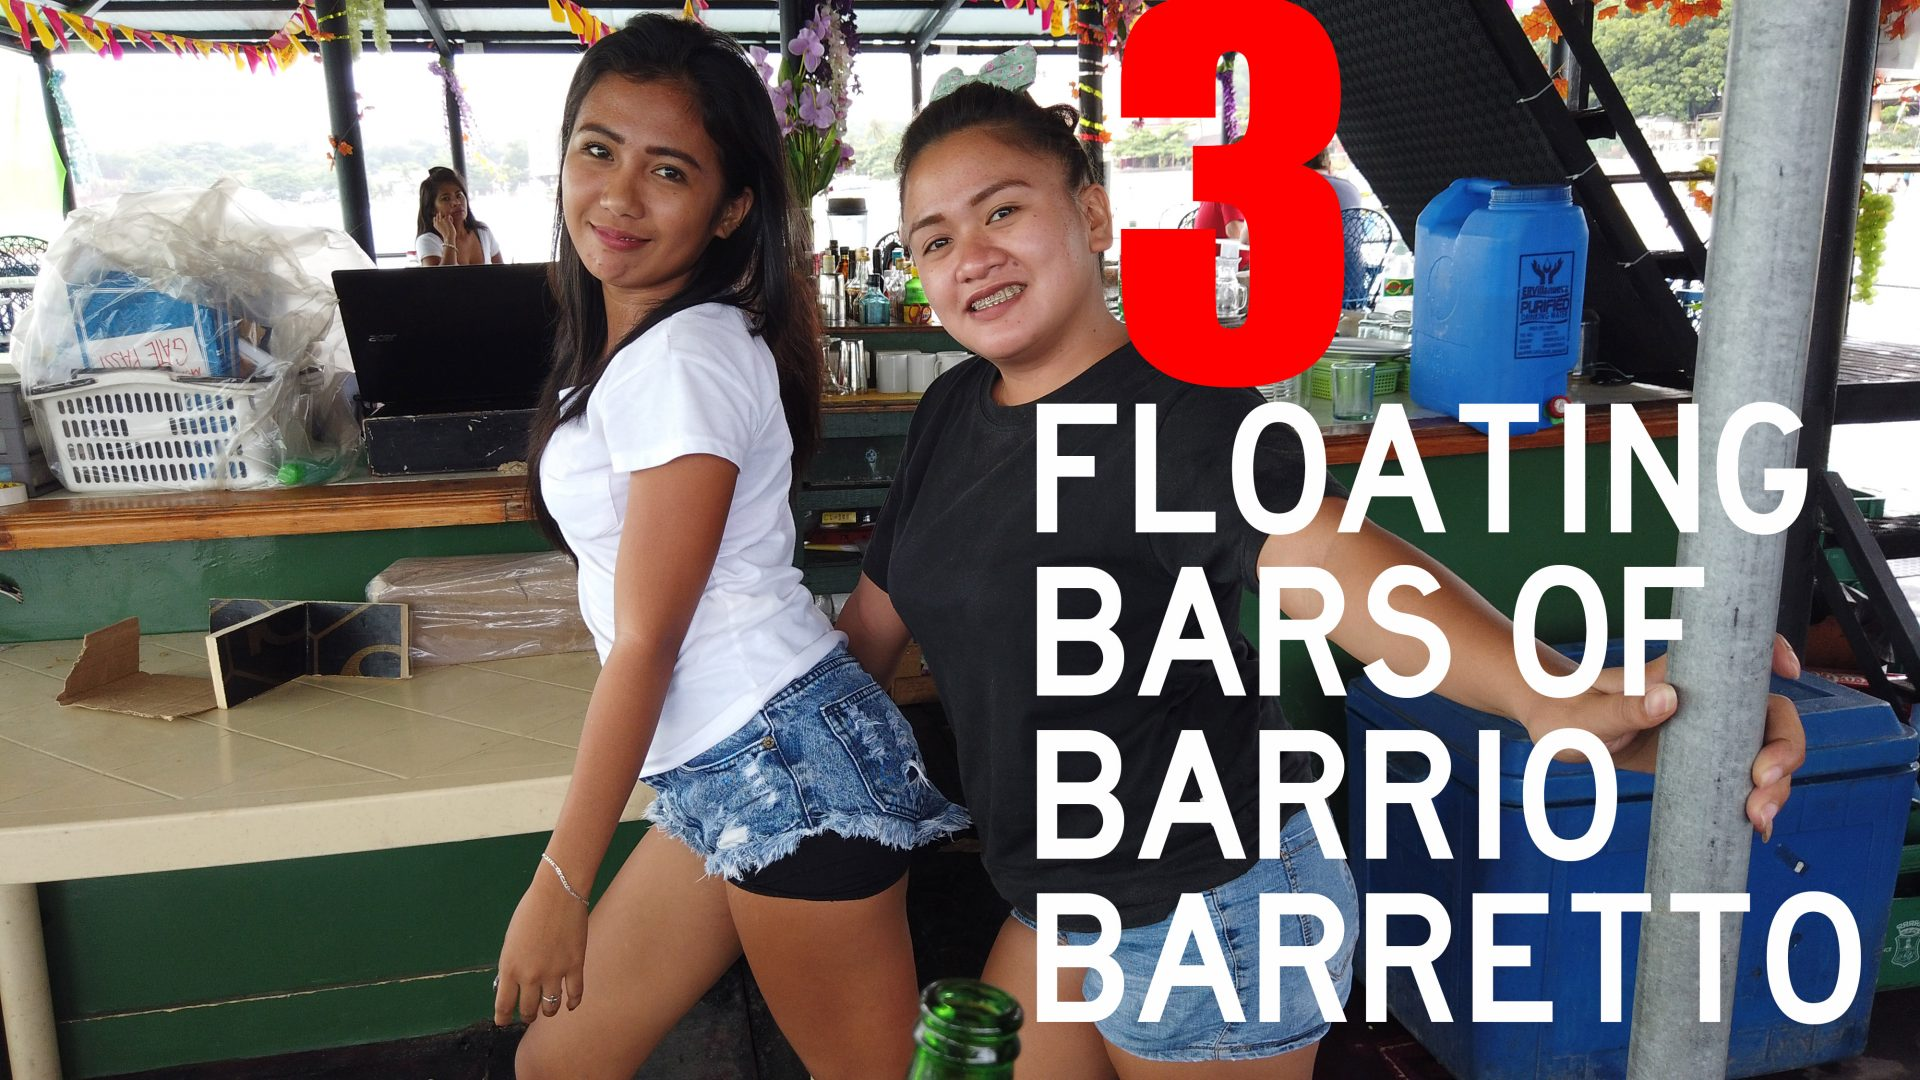 Floating Bars of Barrio Barretto - Olongapo, Zambales, Philippines